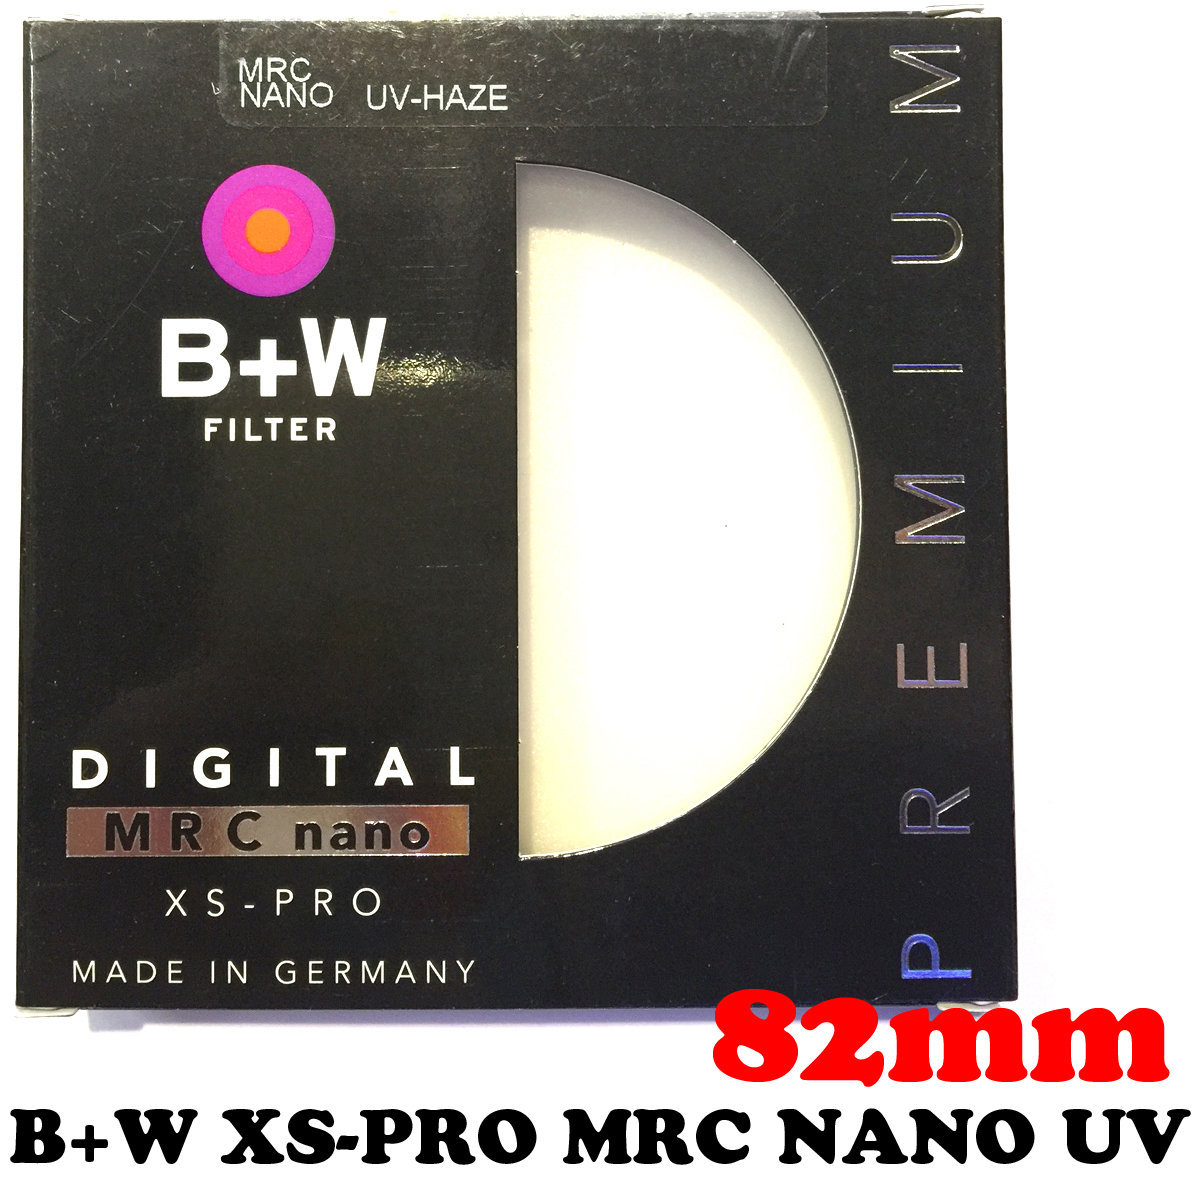 B+W 82mm XS-Pro MRC Nano UV Haze 010M Filter 1066126